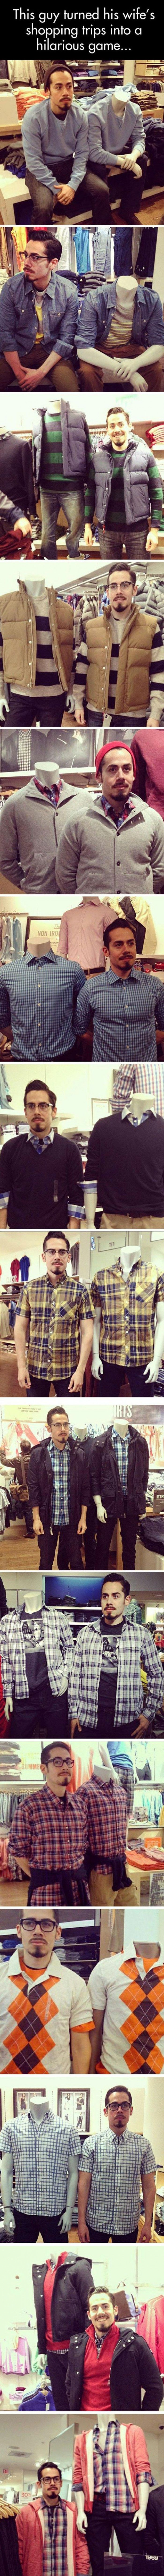 Man Uses His Time Wisely While His Wife Is Shopping <<Ok, but why does he look like Tony Stark?